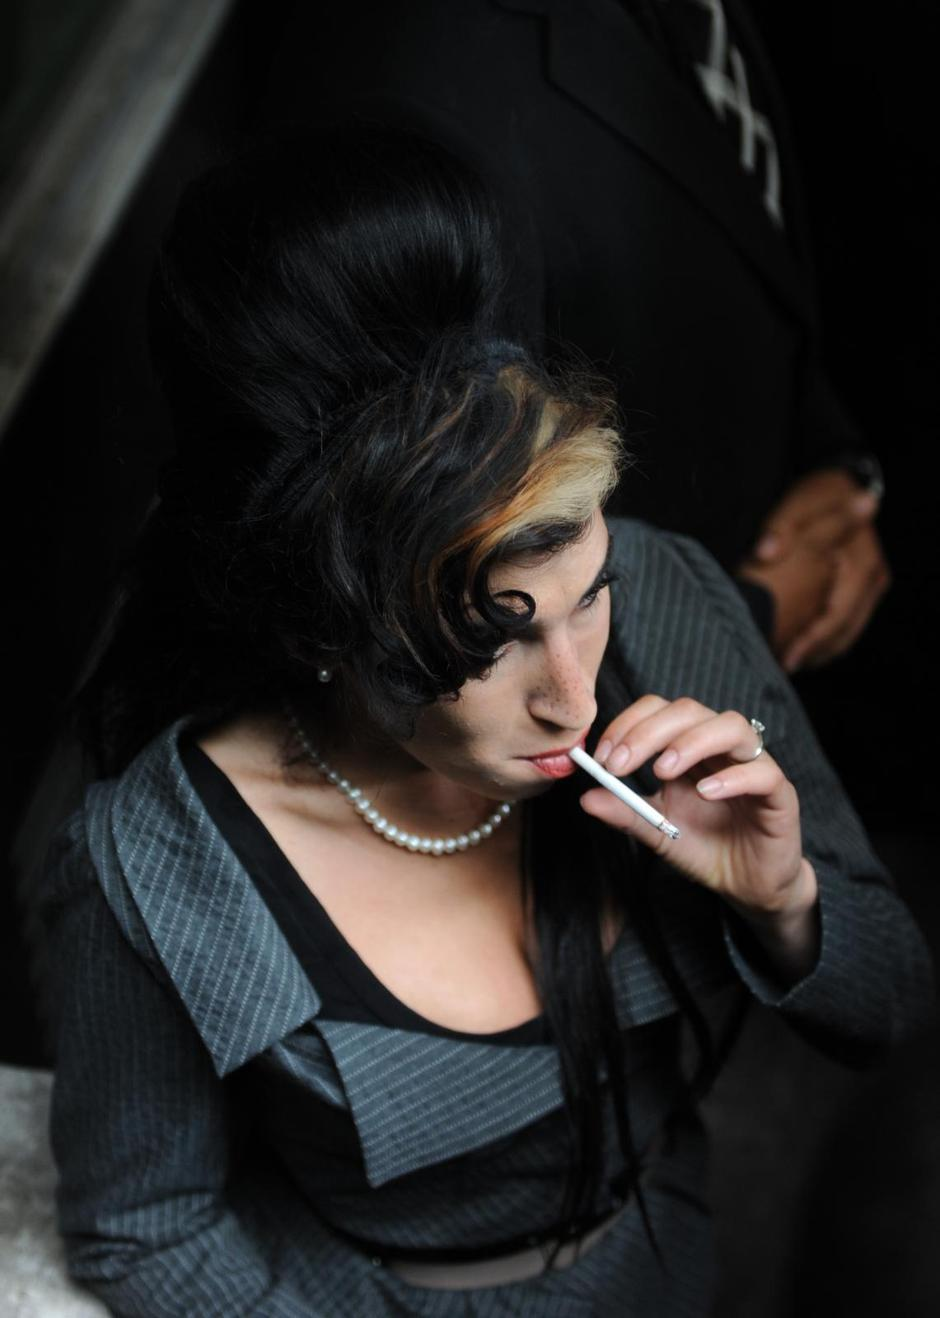 Amy Winehouse in court | Autor: Zak Hussein/Press Association/PIXSELL